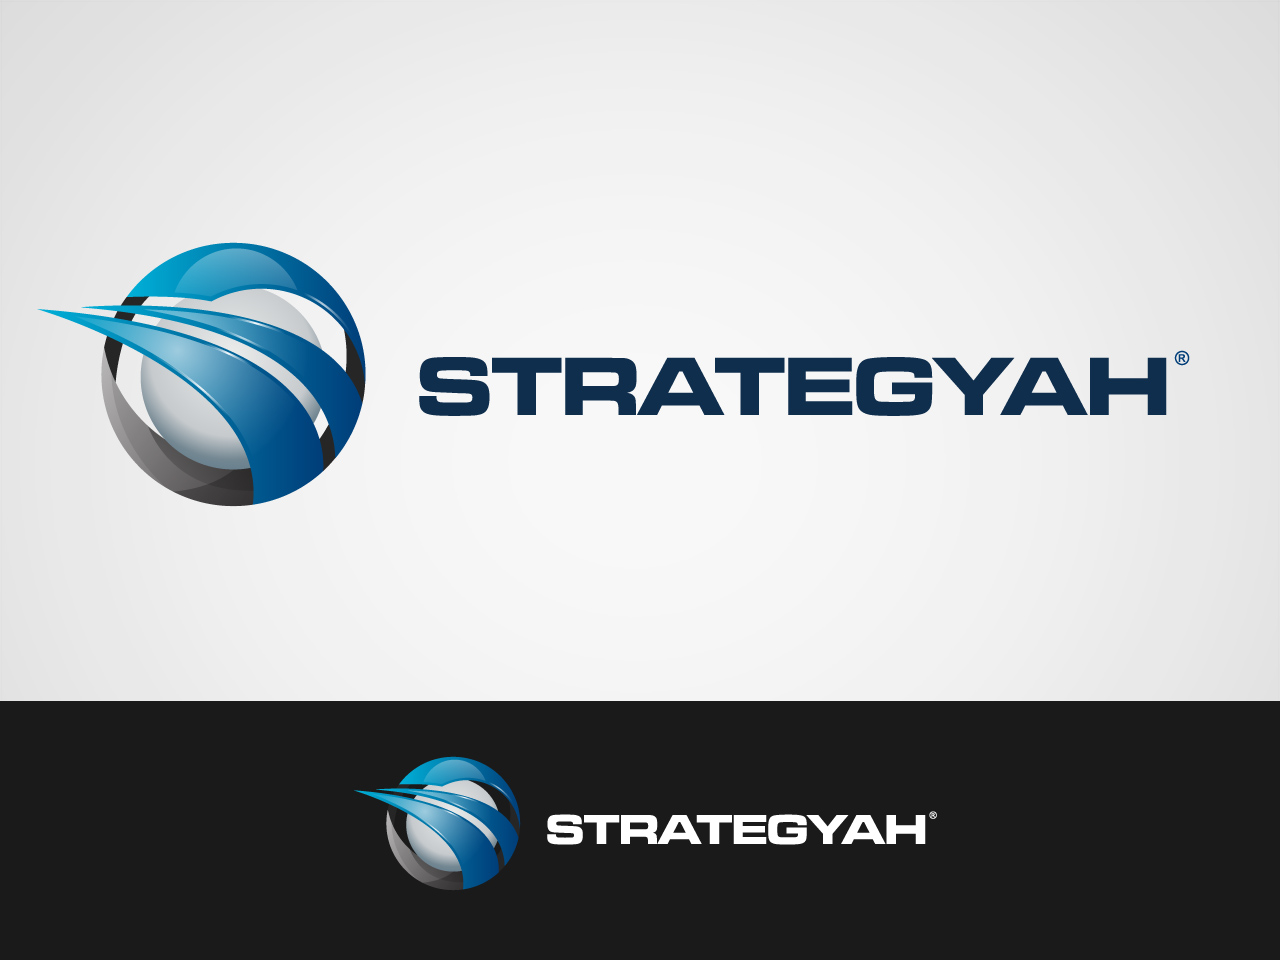 Logo Design by jpbituin - Entry No. 39 in the Logo Design Contest Creative Logo Design for Strategyah.